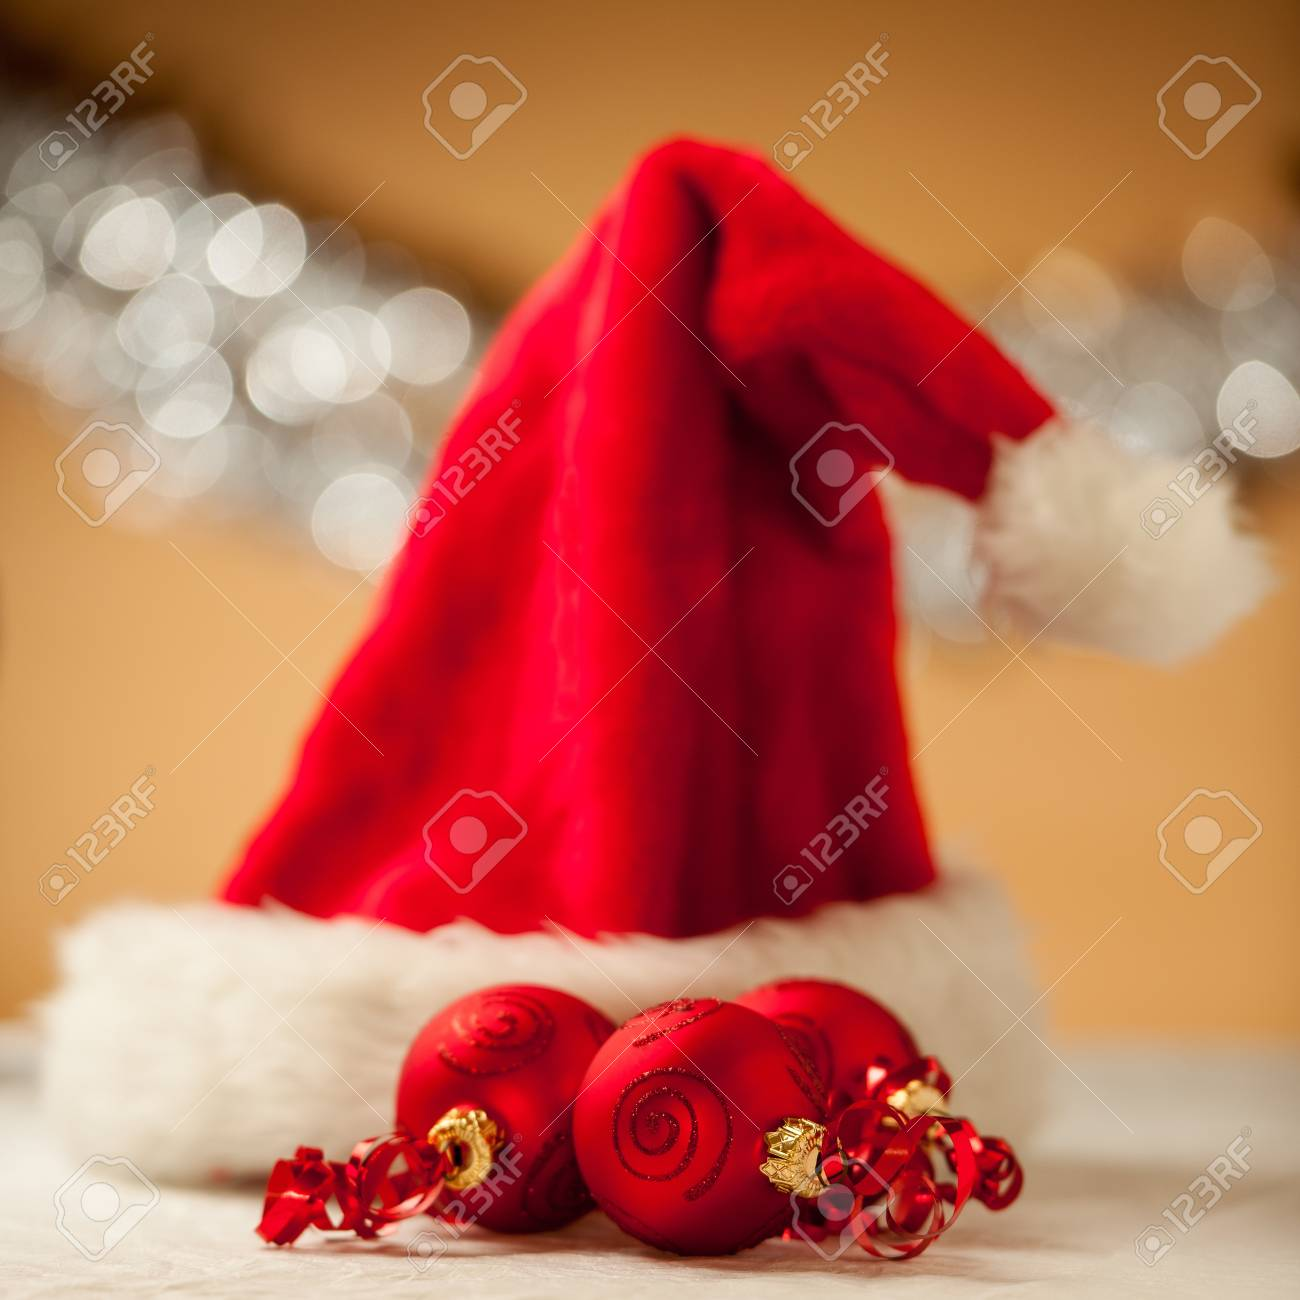 Christmas ornaments - red baubles with shiny tape in background - 16413443